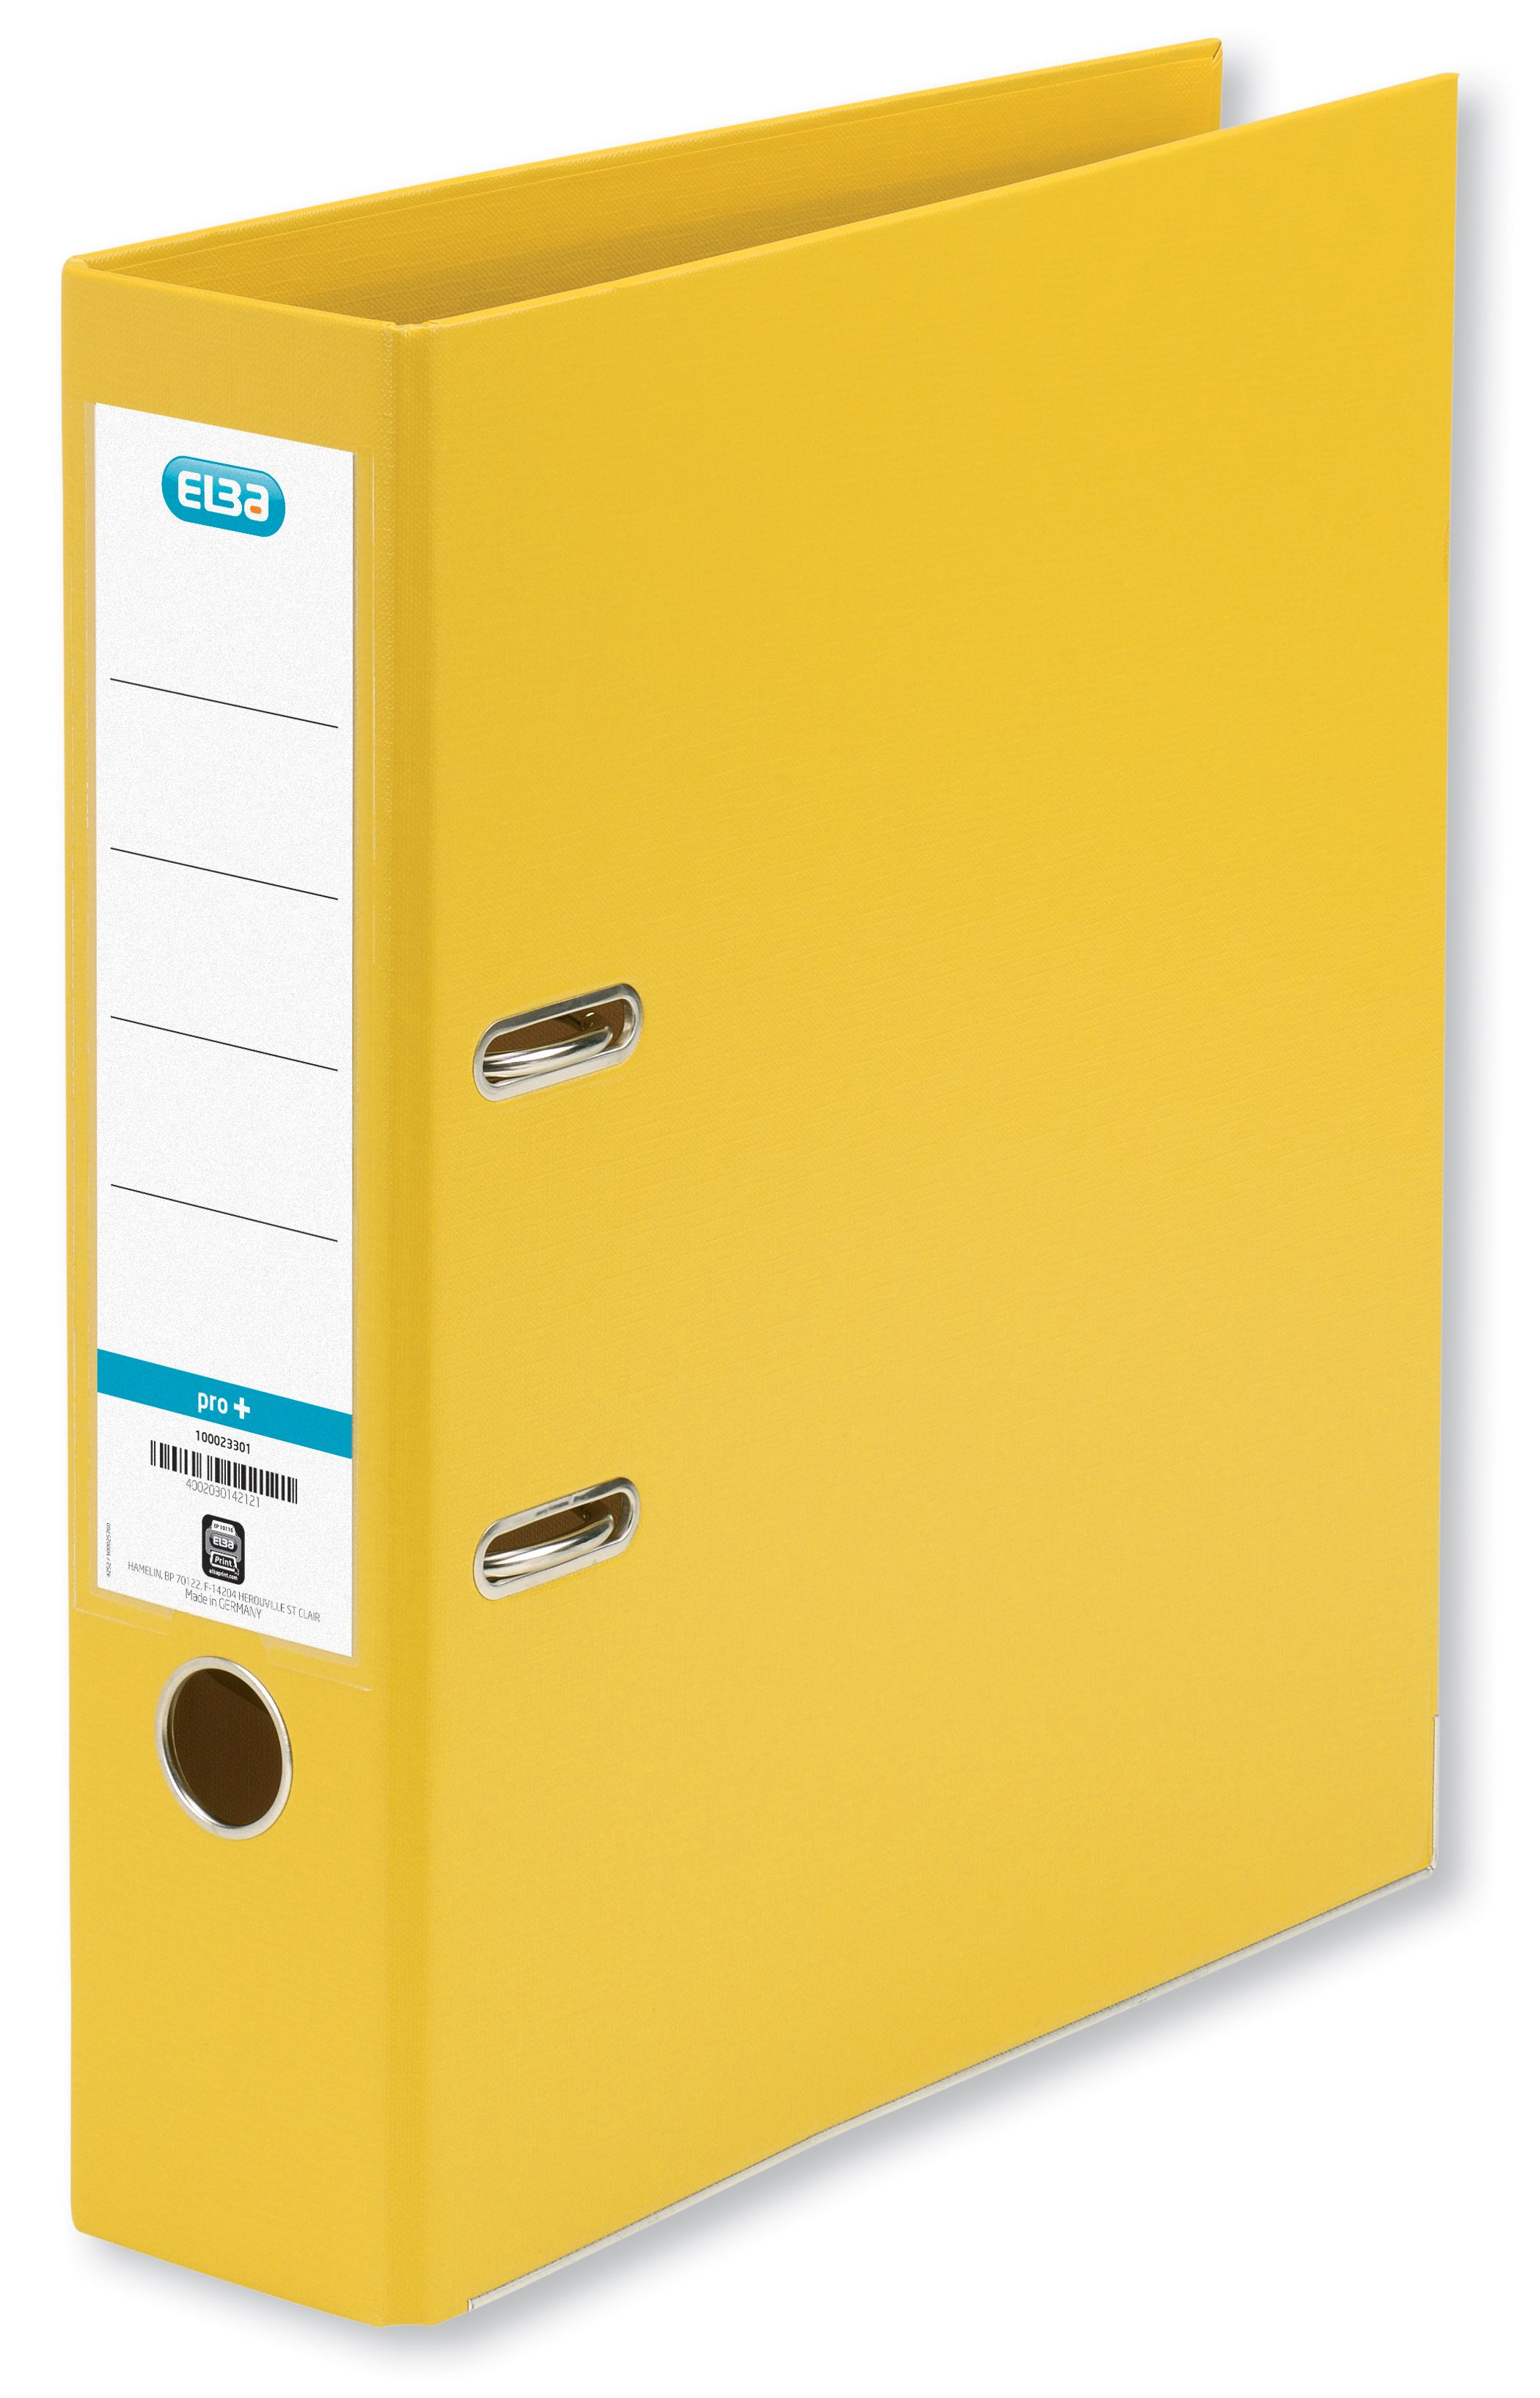 Elba Lever Arch File PVC 70mm Spine A4 Yellow Ref 100202166 [Pack 10]